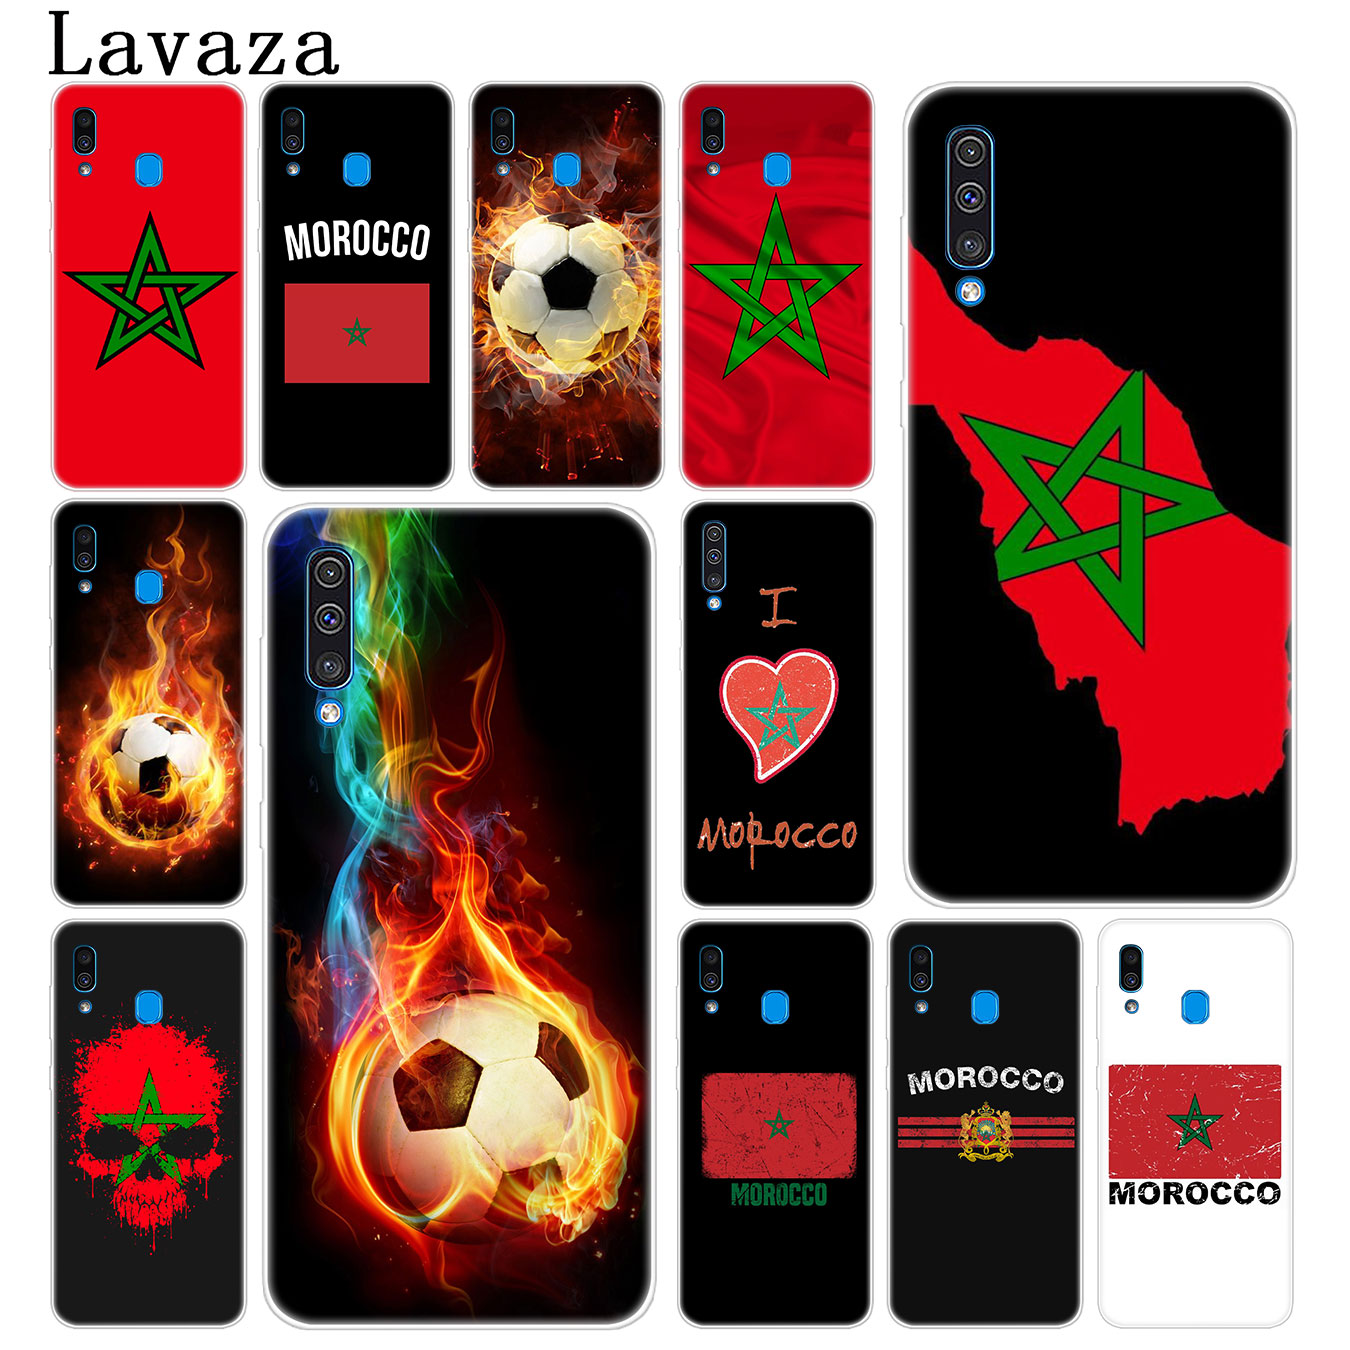 Lavaza morocco <font><b>flag</b></font> soccer football Phone Cover Case for <font><b>Samsung</b></font> Galaxy A70 A60 A50 A40 A30 A20 <font><b>A10</b></font> M10 M20 M30 M40 A20e Cover image